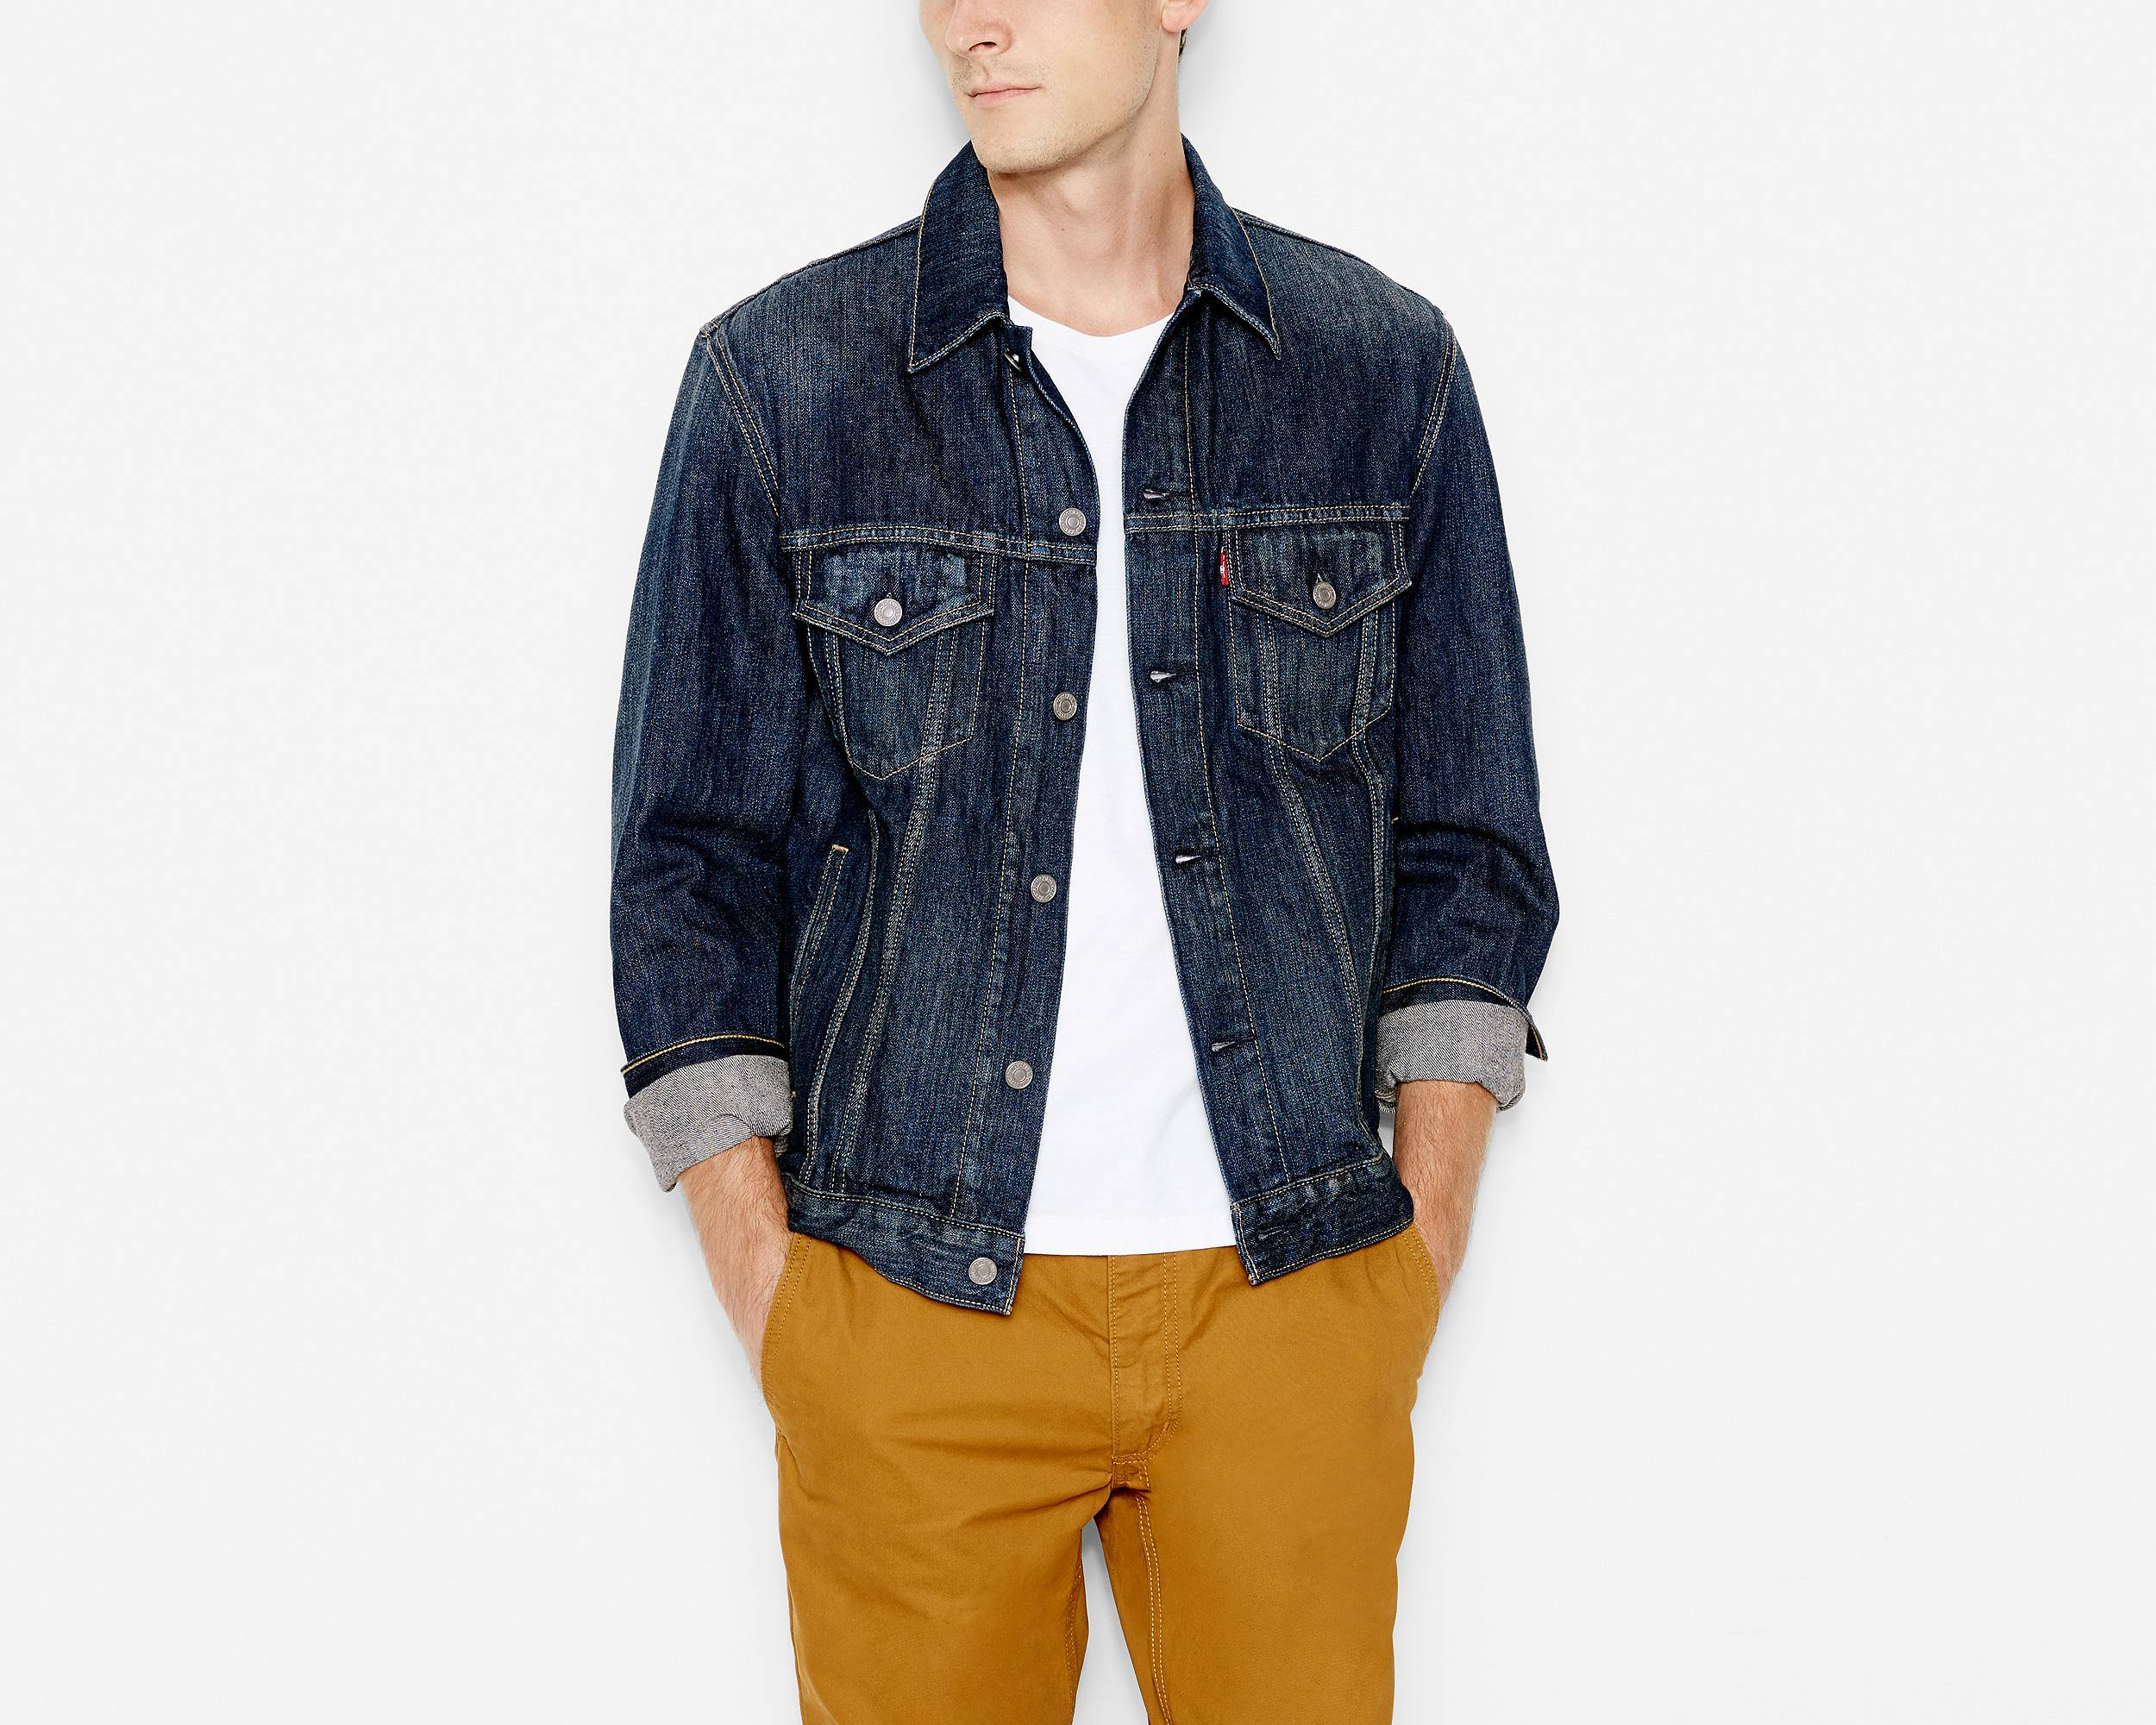 Jean & Denim Jackets Today's fashion statement: the denim jacket. There's no denying that this is the season's hottest piece so regardless of your style, you have to make sure you add a proper cool jean jacket to your closet.